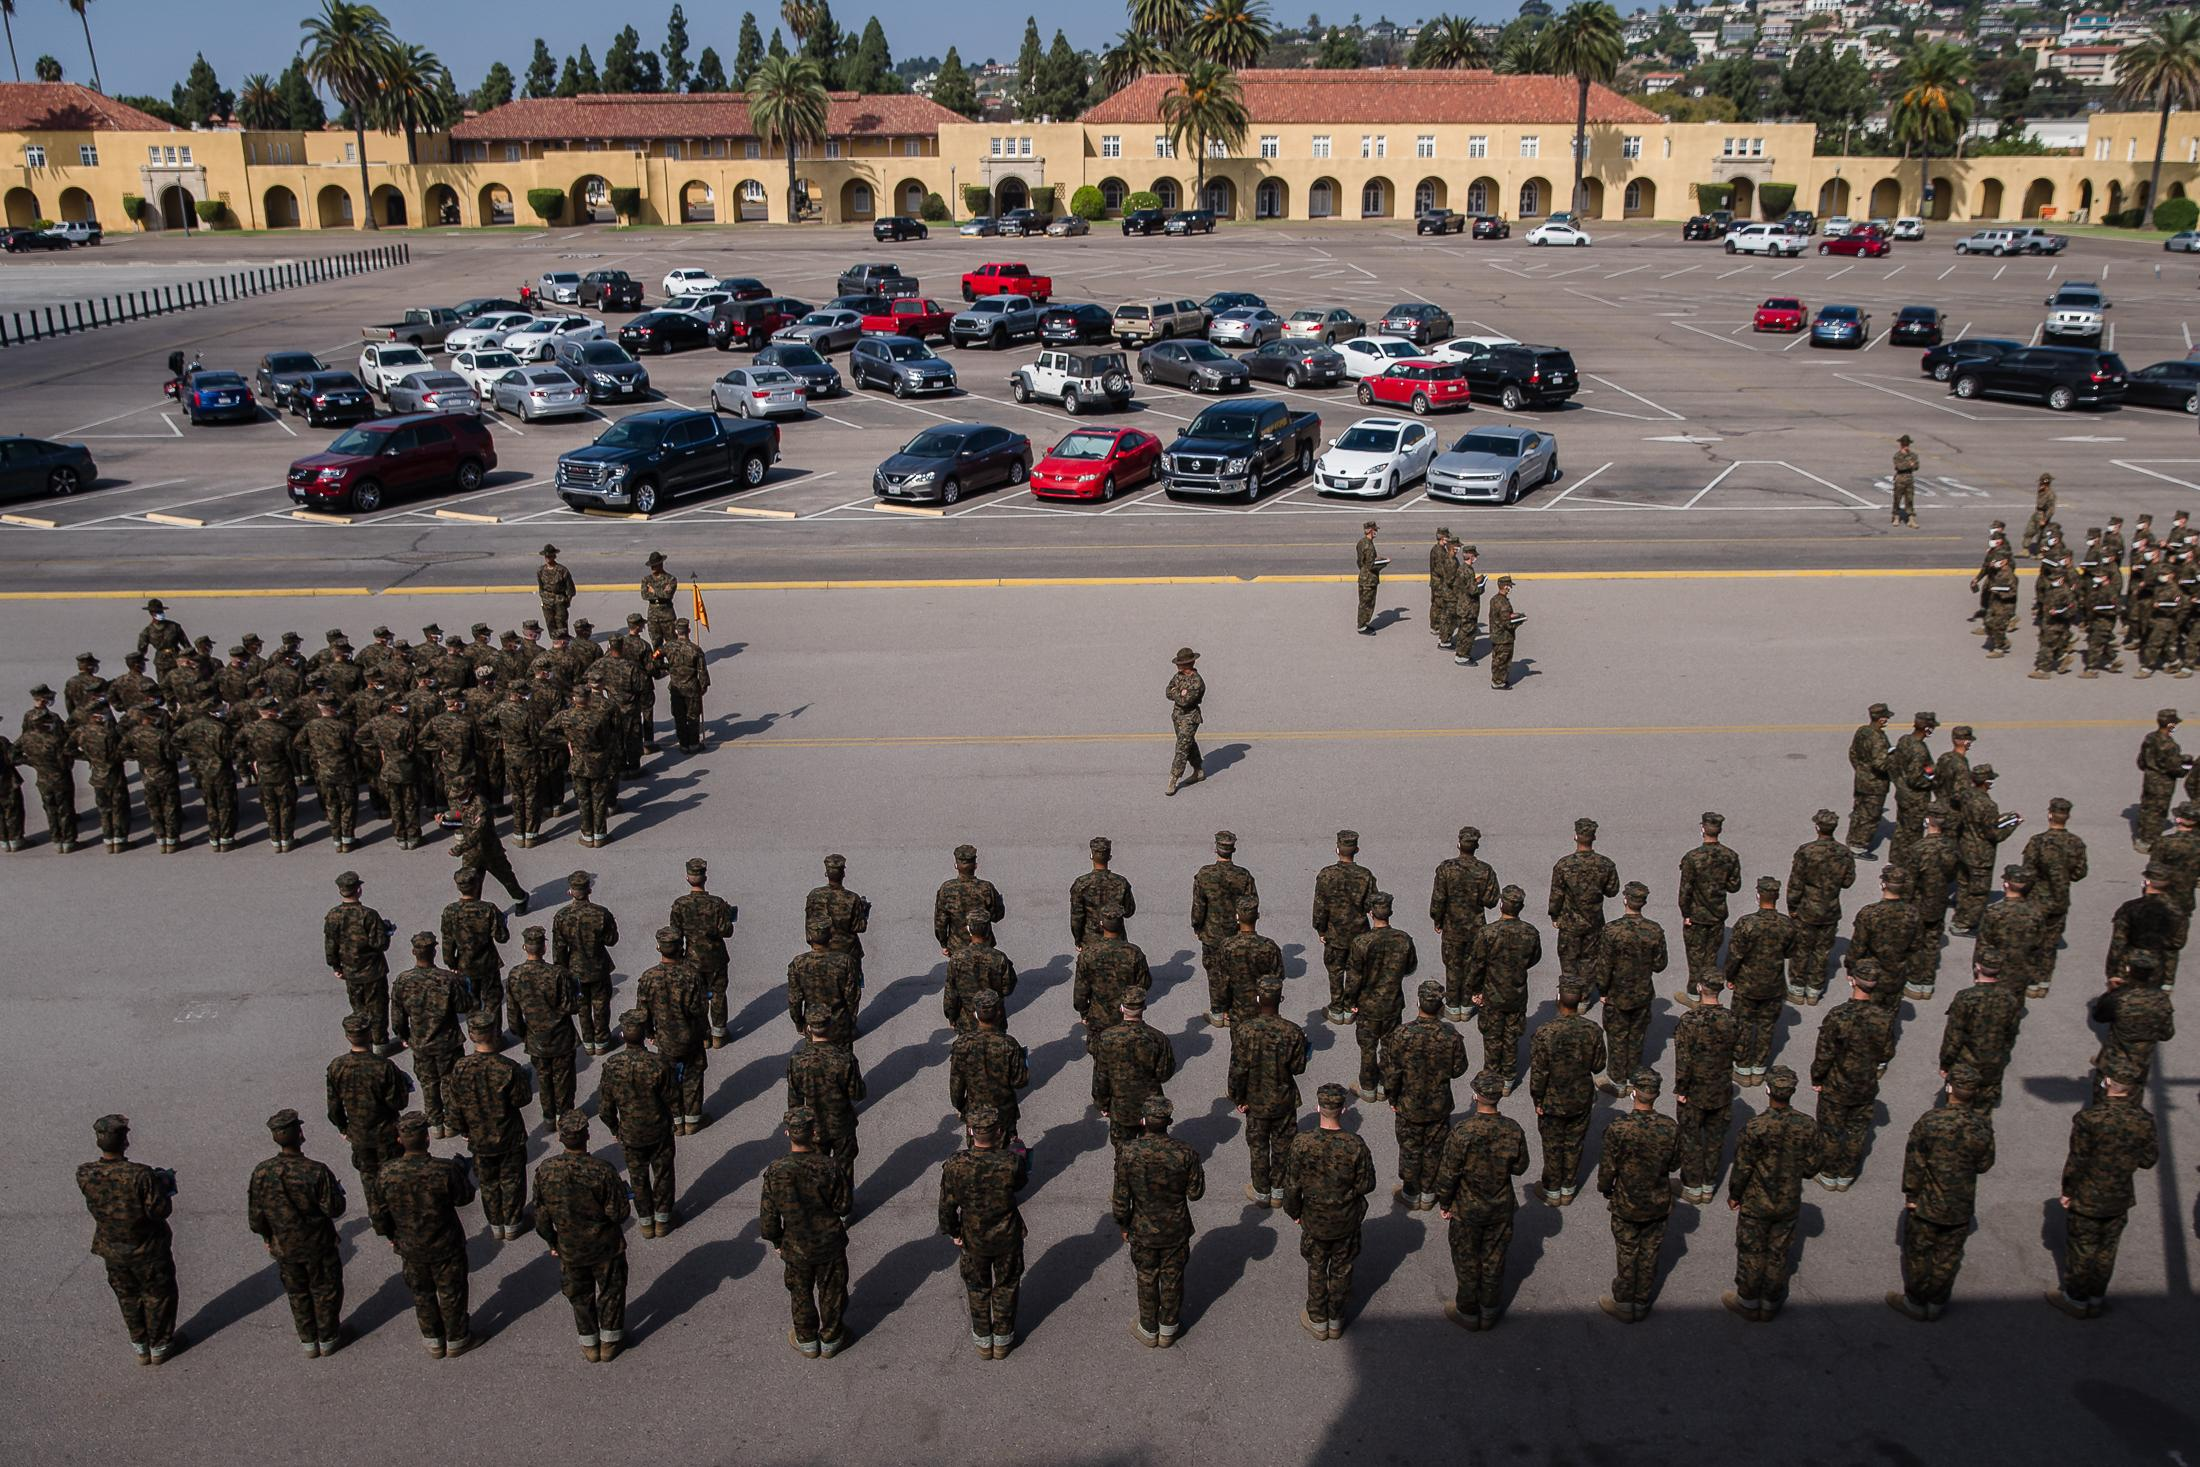 Recruits stand in formation before they walk to the auditorium for class at the Marine Corps Recruit Depot San Diego.